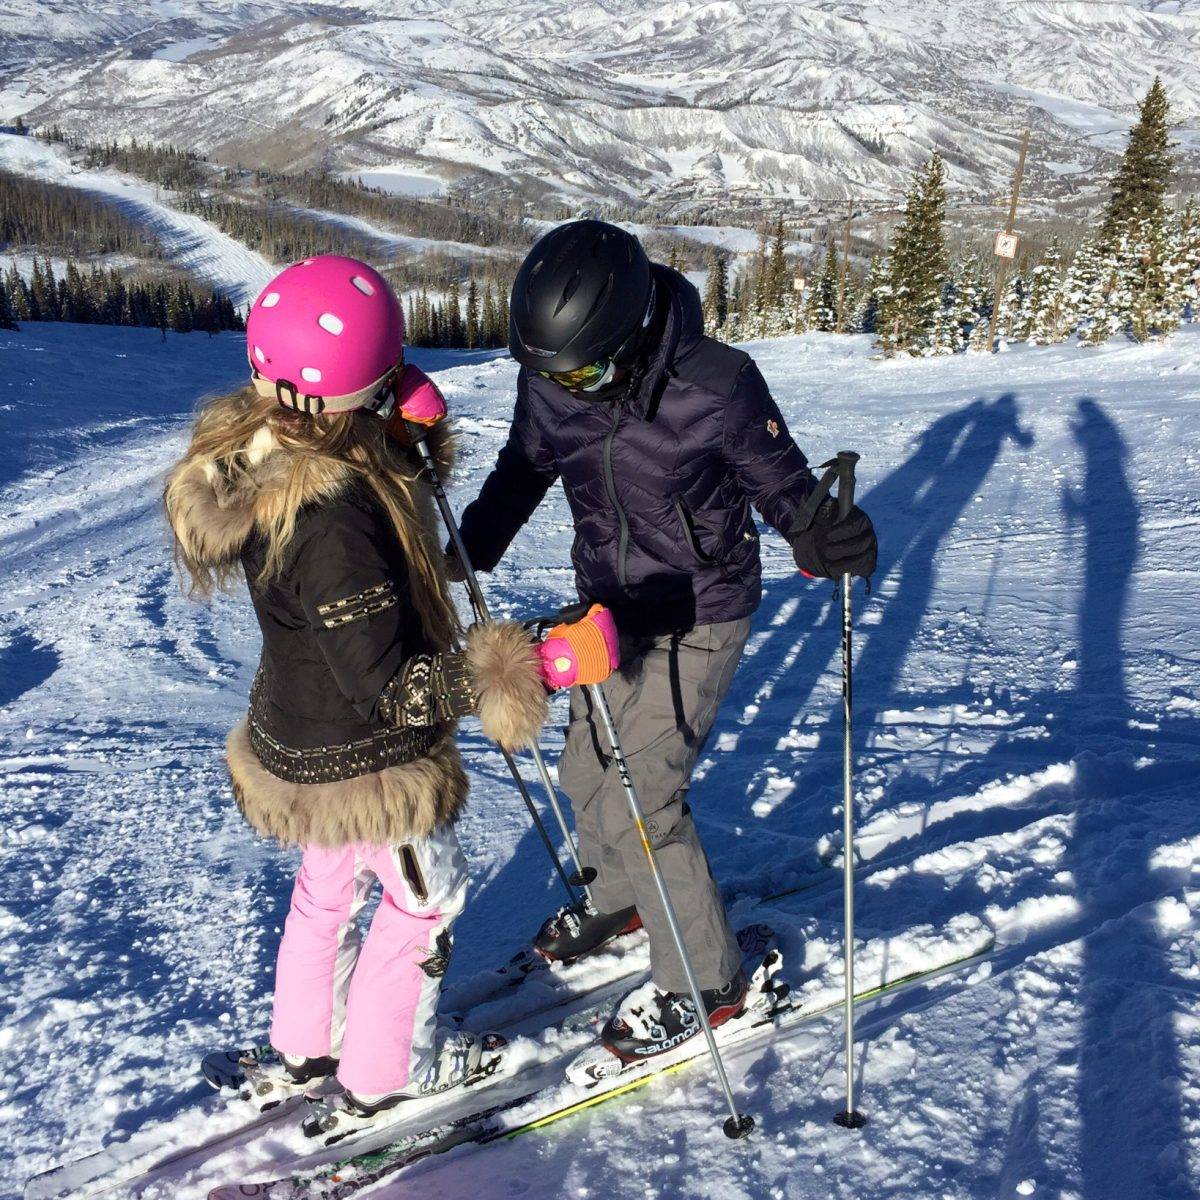 what to pack for trip to aspen - bogner skiwear